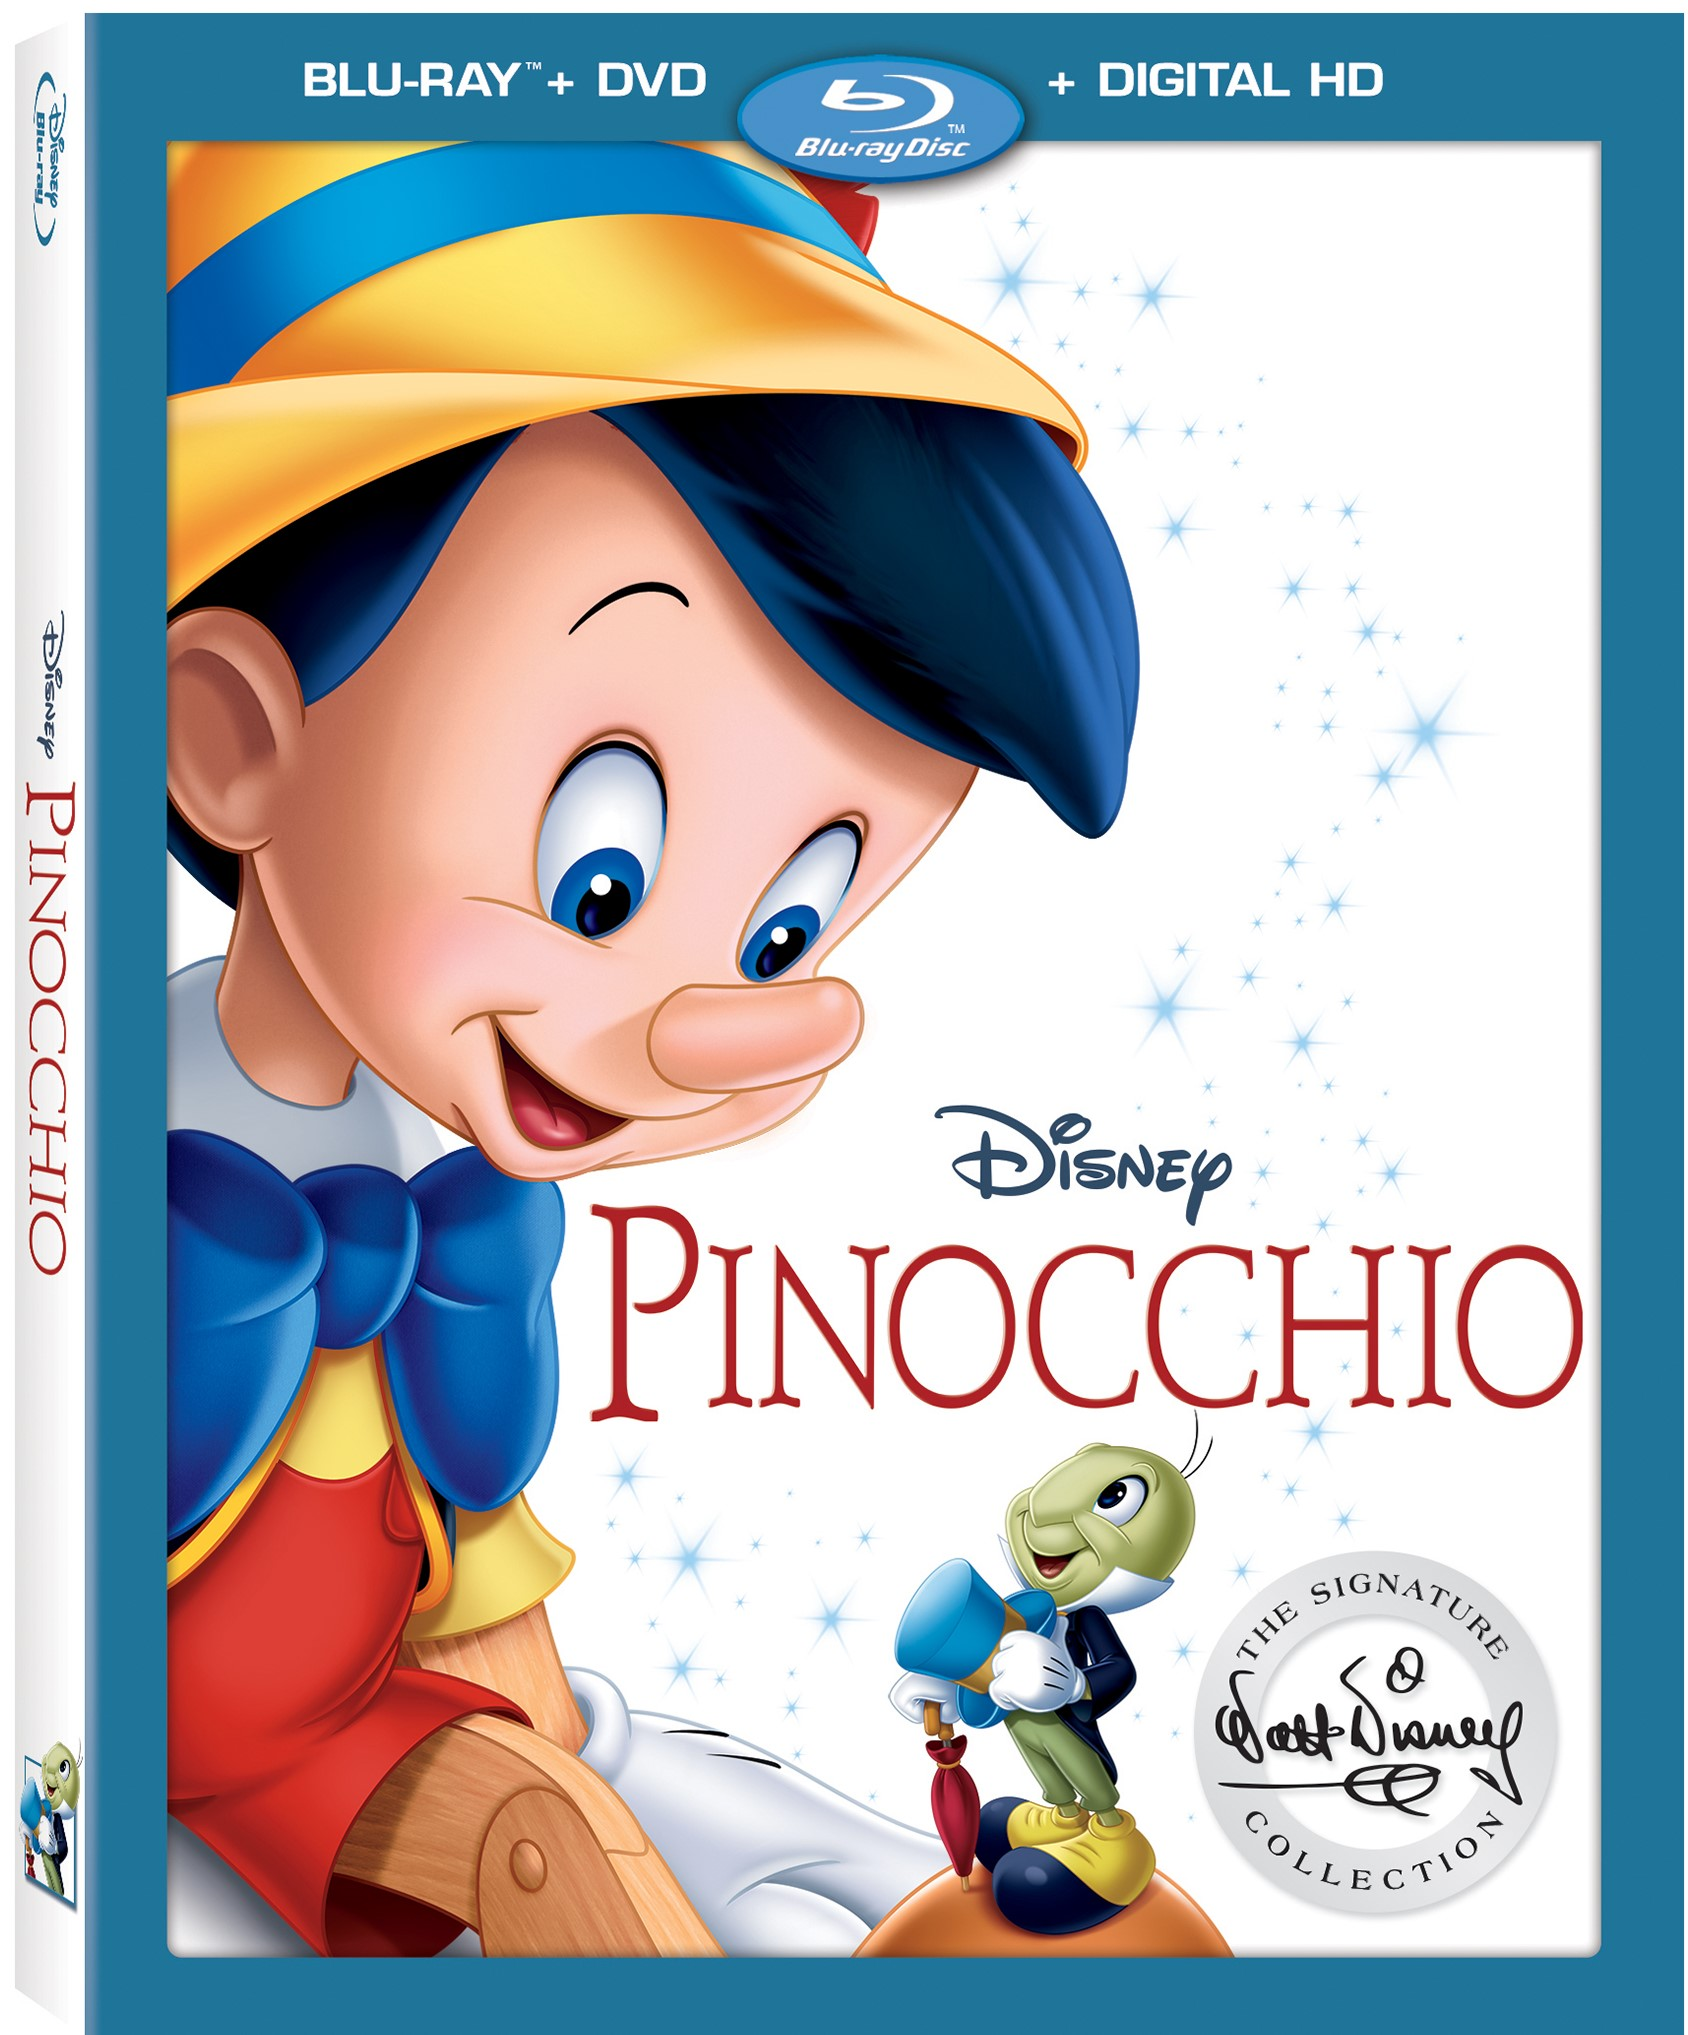 Disney's PINOCCHIO Signature Collection Arrives on Blu-ray January